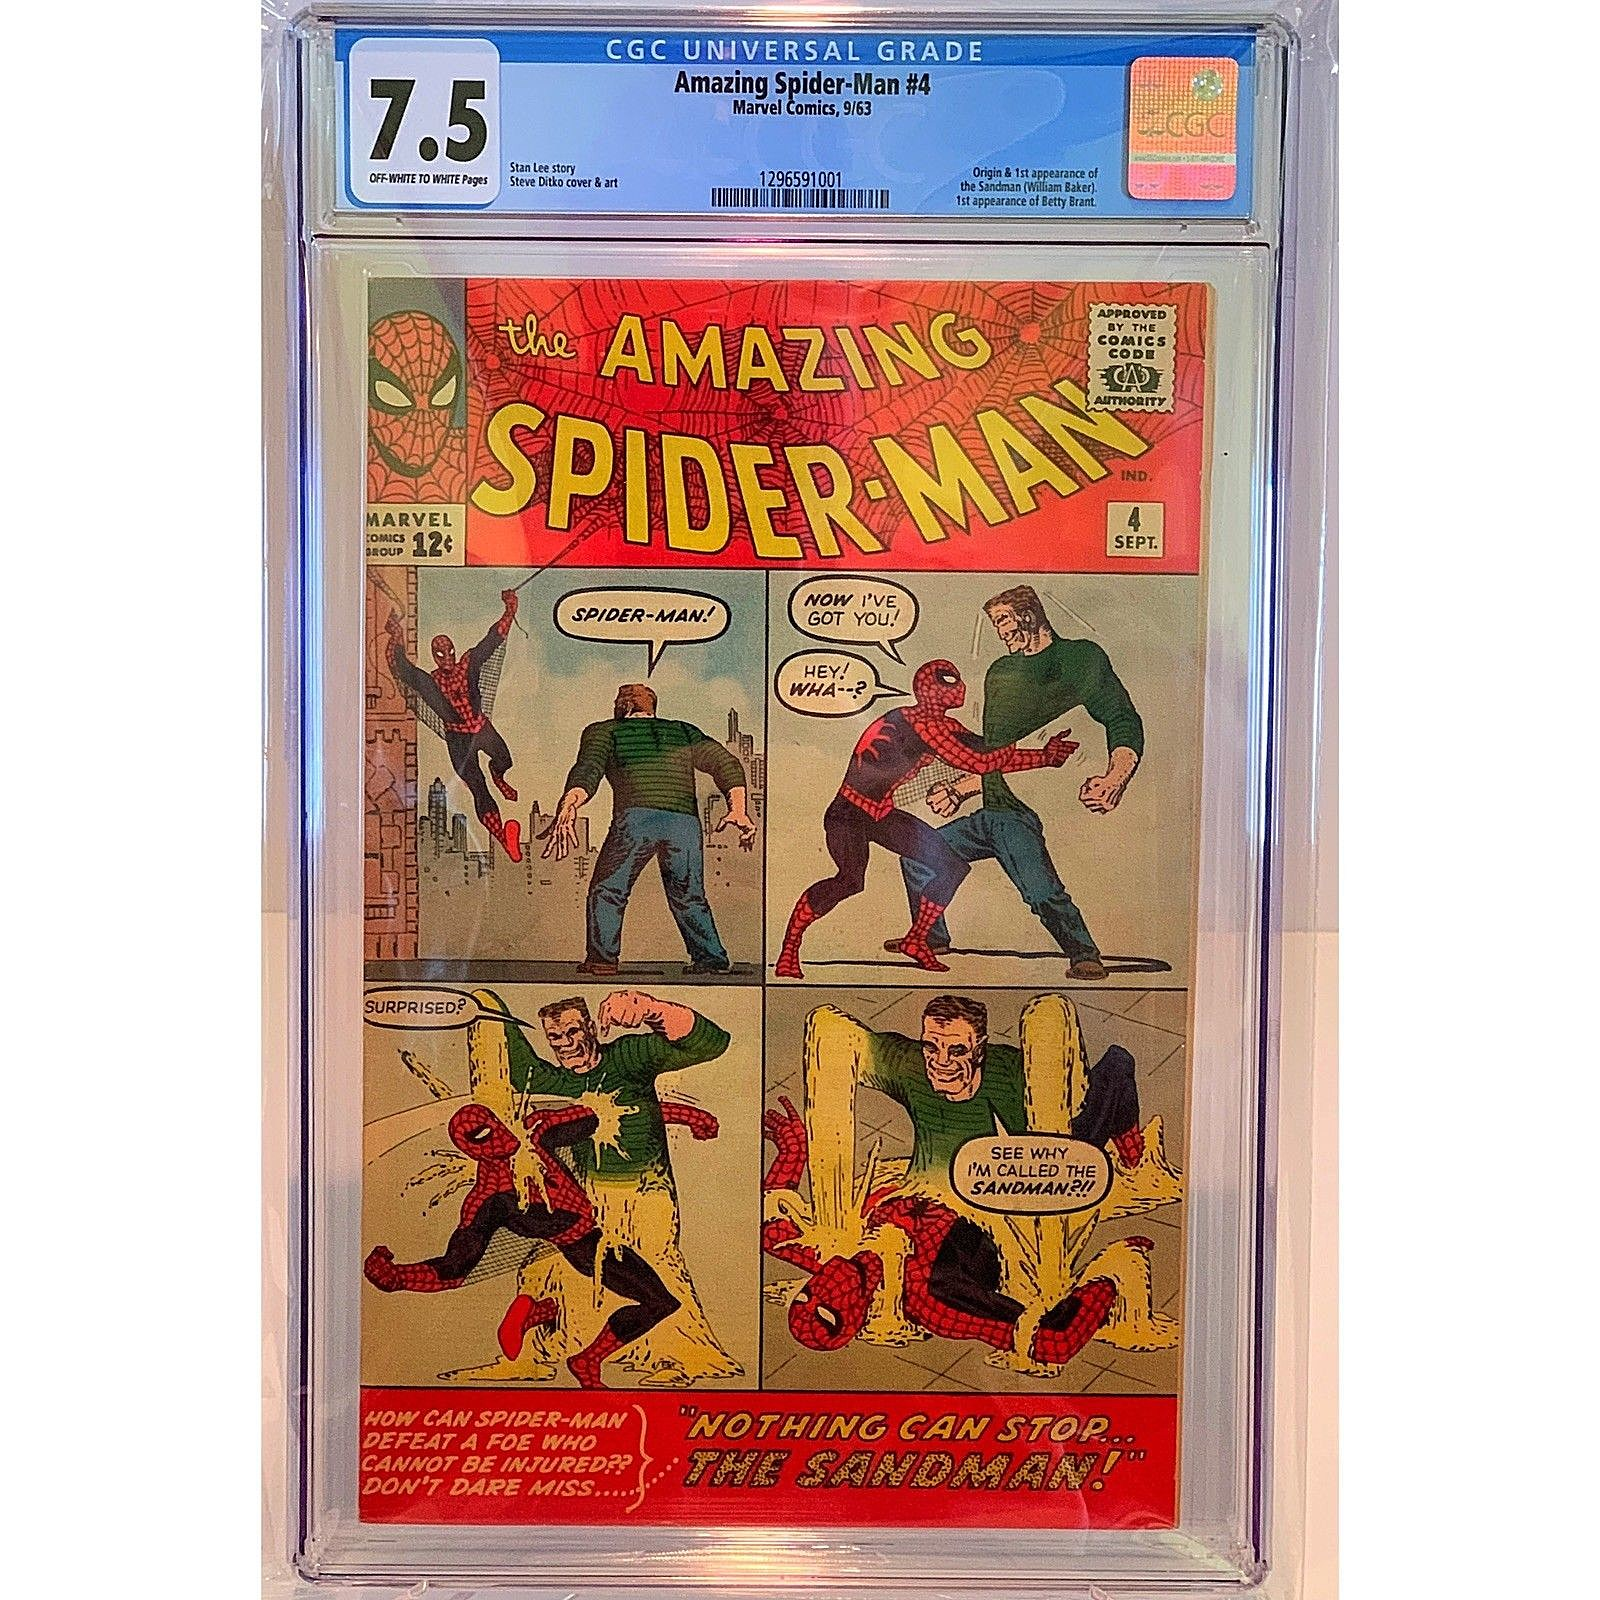 Most Valuable Spider-Man Comic Books [Photos]